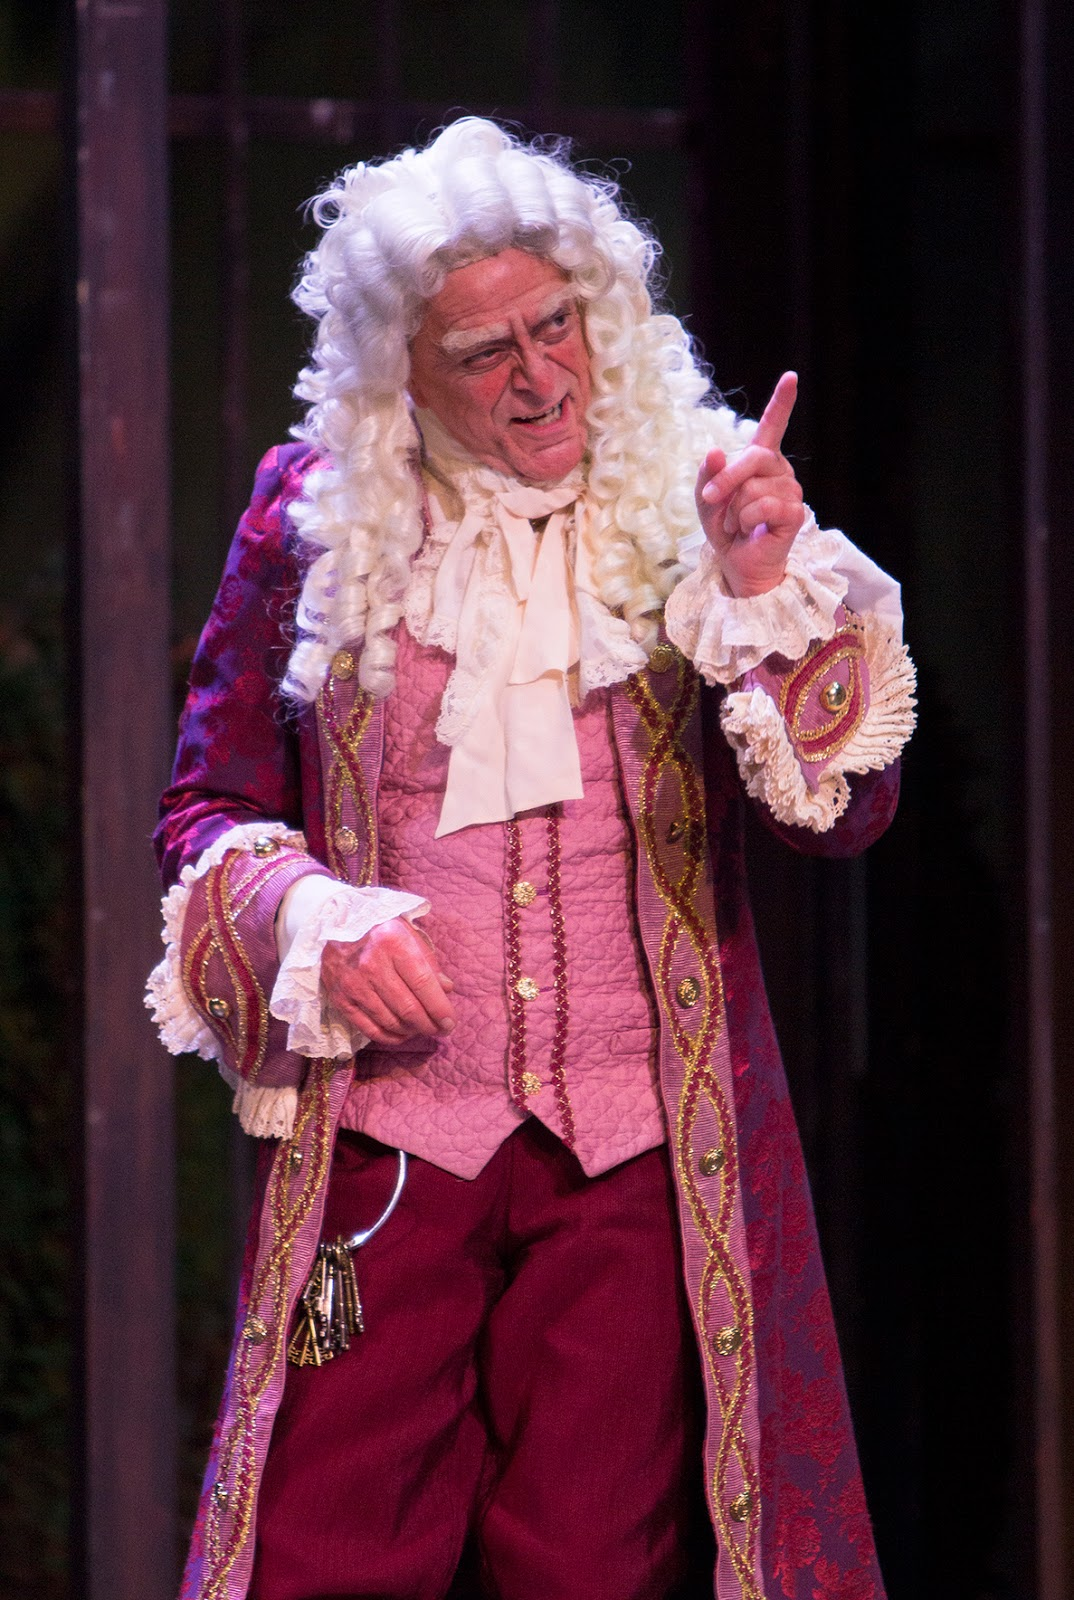 IN PERFORMANCE: bass-baritone DONALD HARTMANN as Bartolo in Greensboro Opera's production of Gioachino Rossini's IL BARBIERE DI SIVIGLIA, January 2018 [Photo by Star Path Images, © by Greensboro Opera]